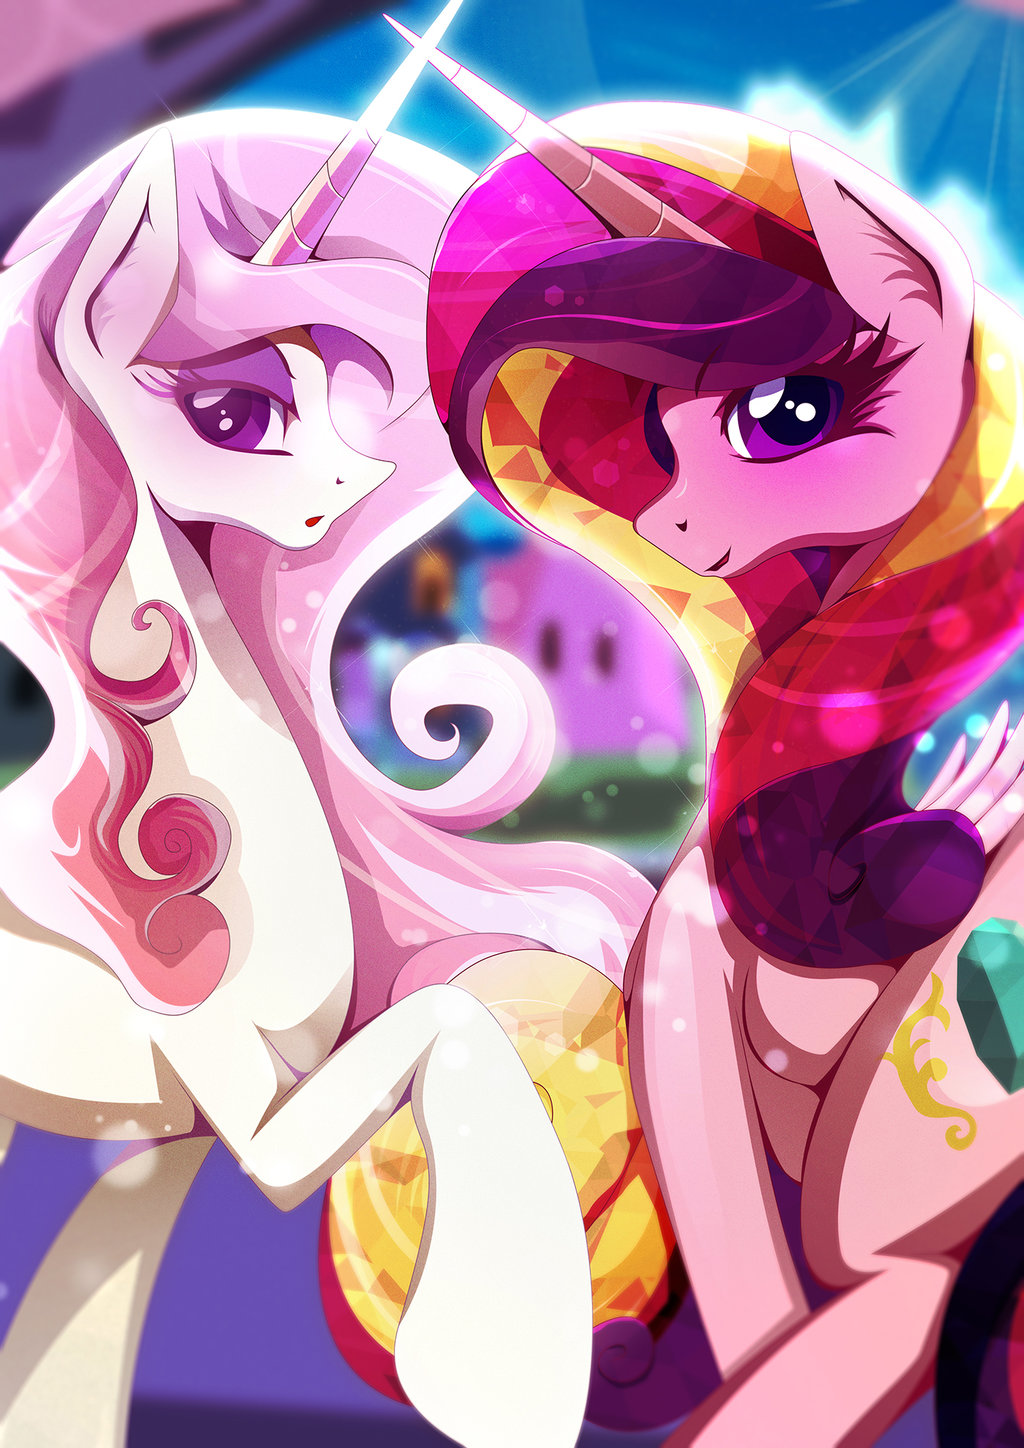 Equestria Daily - MLP Stuff!: 11 of the Best Sunset